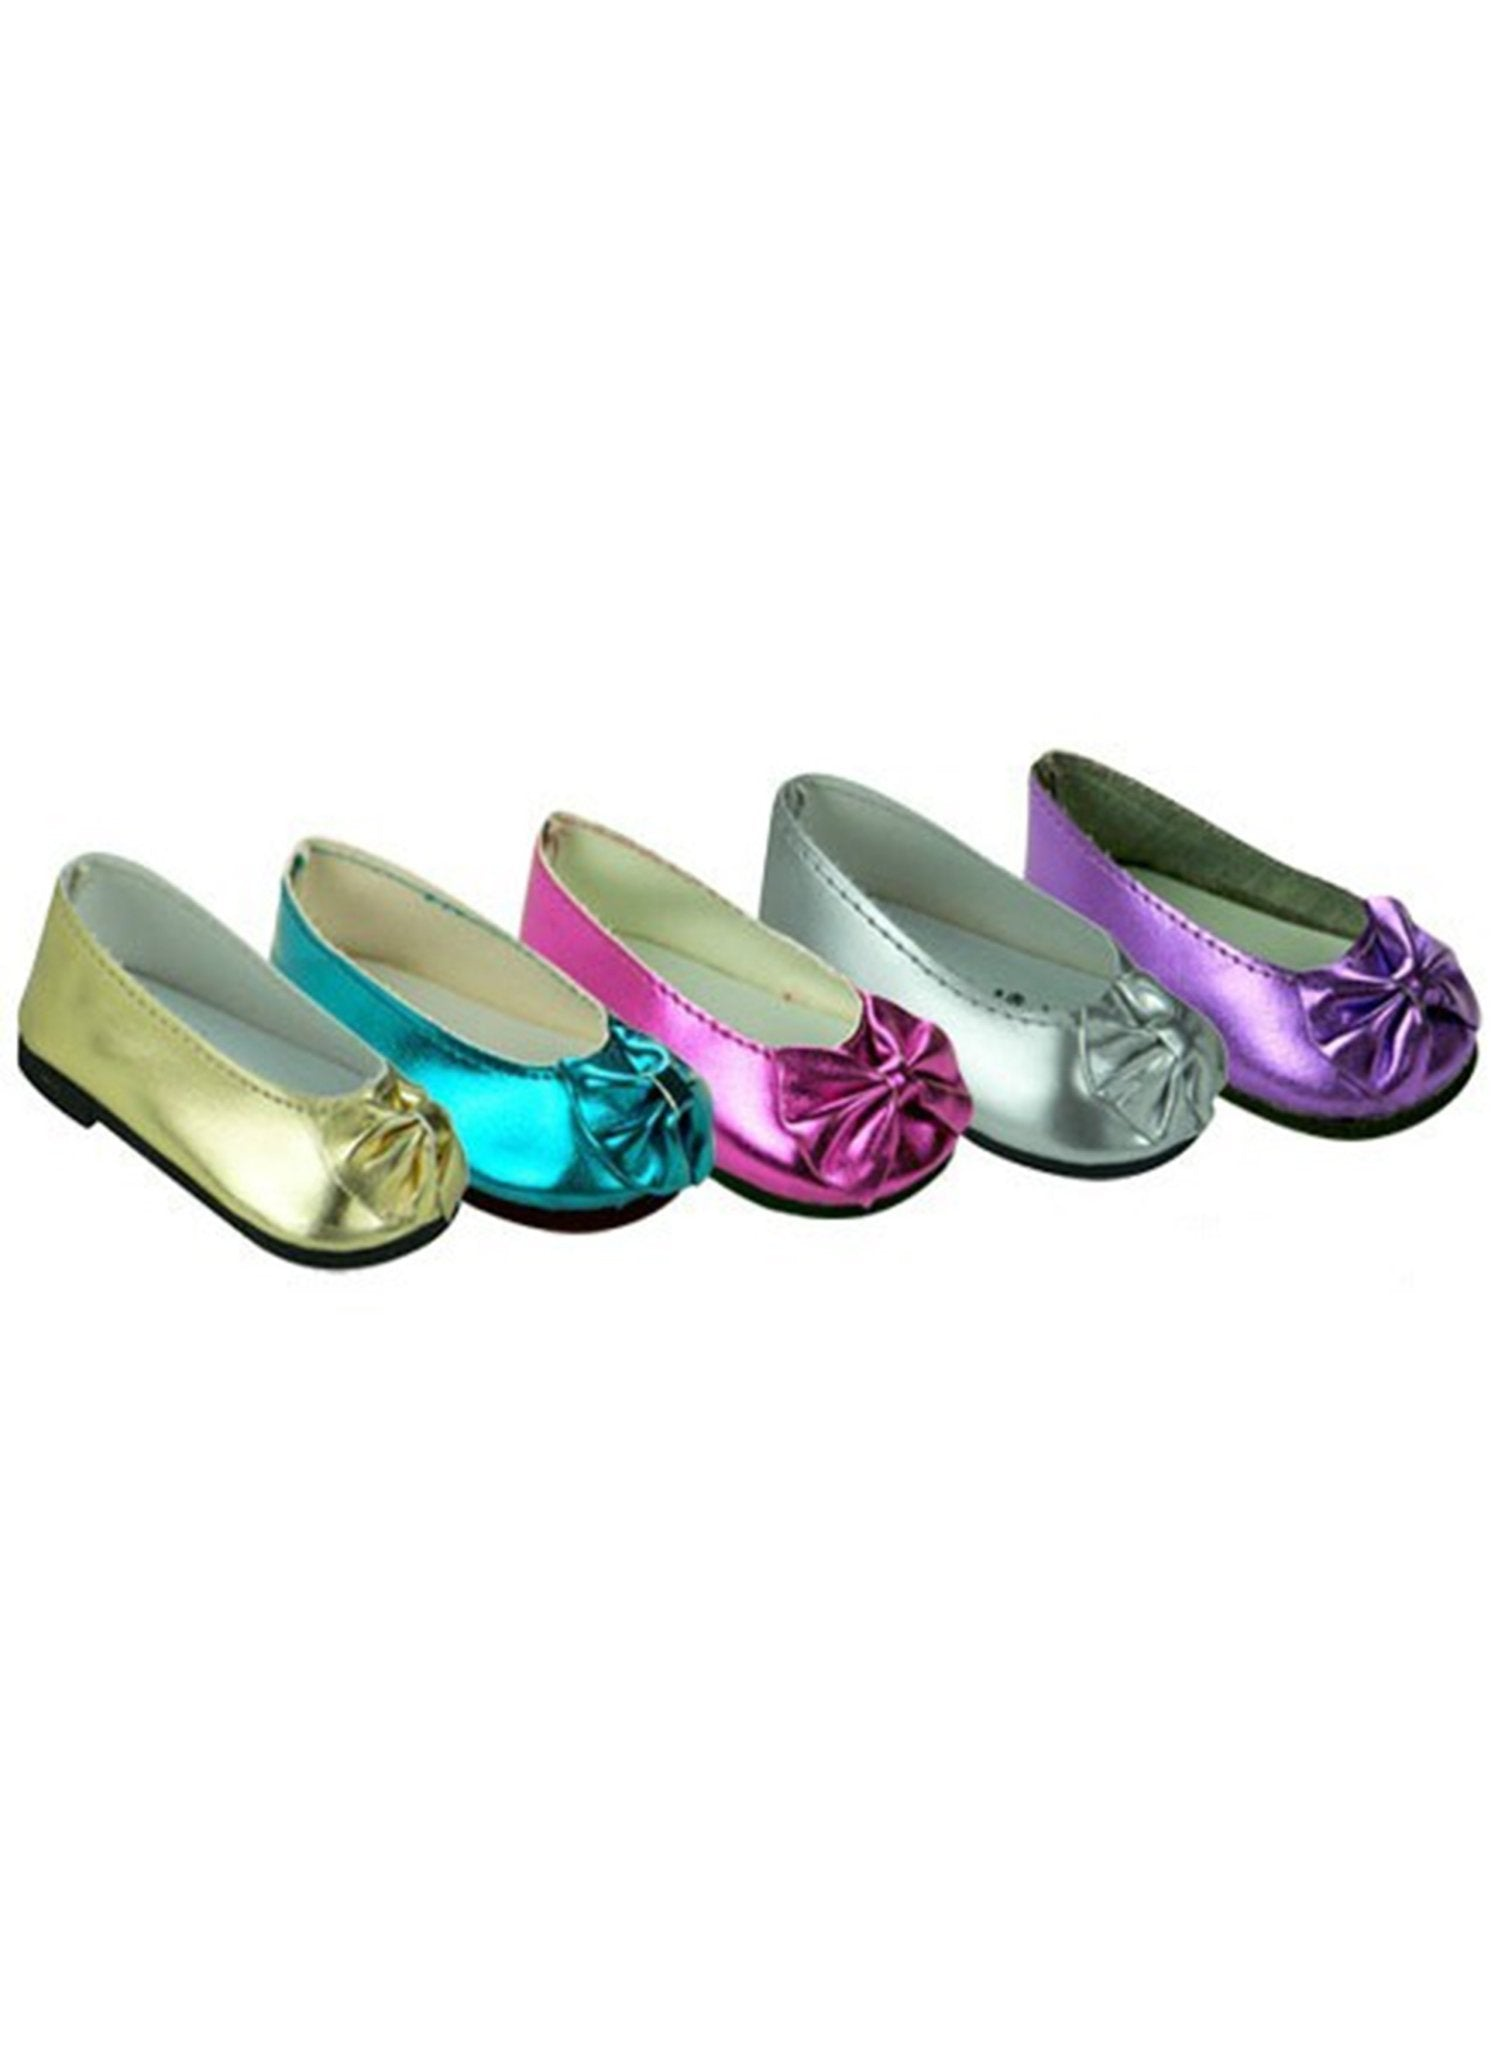 Doll Patent Bow Shoe - Mums and Bumps